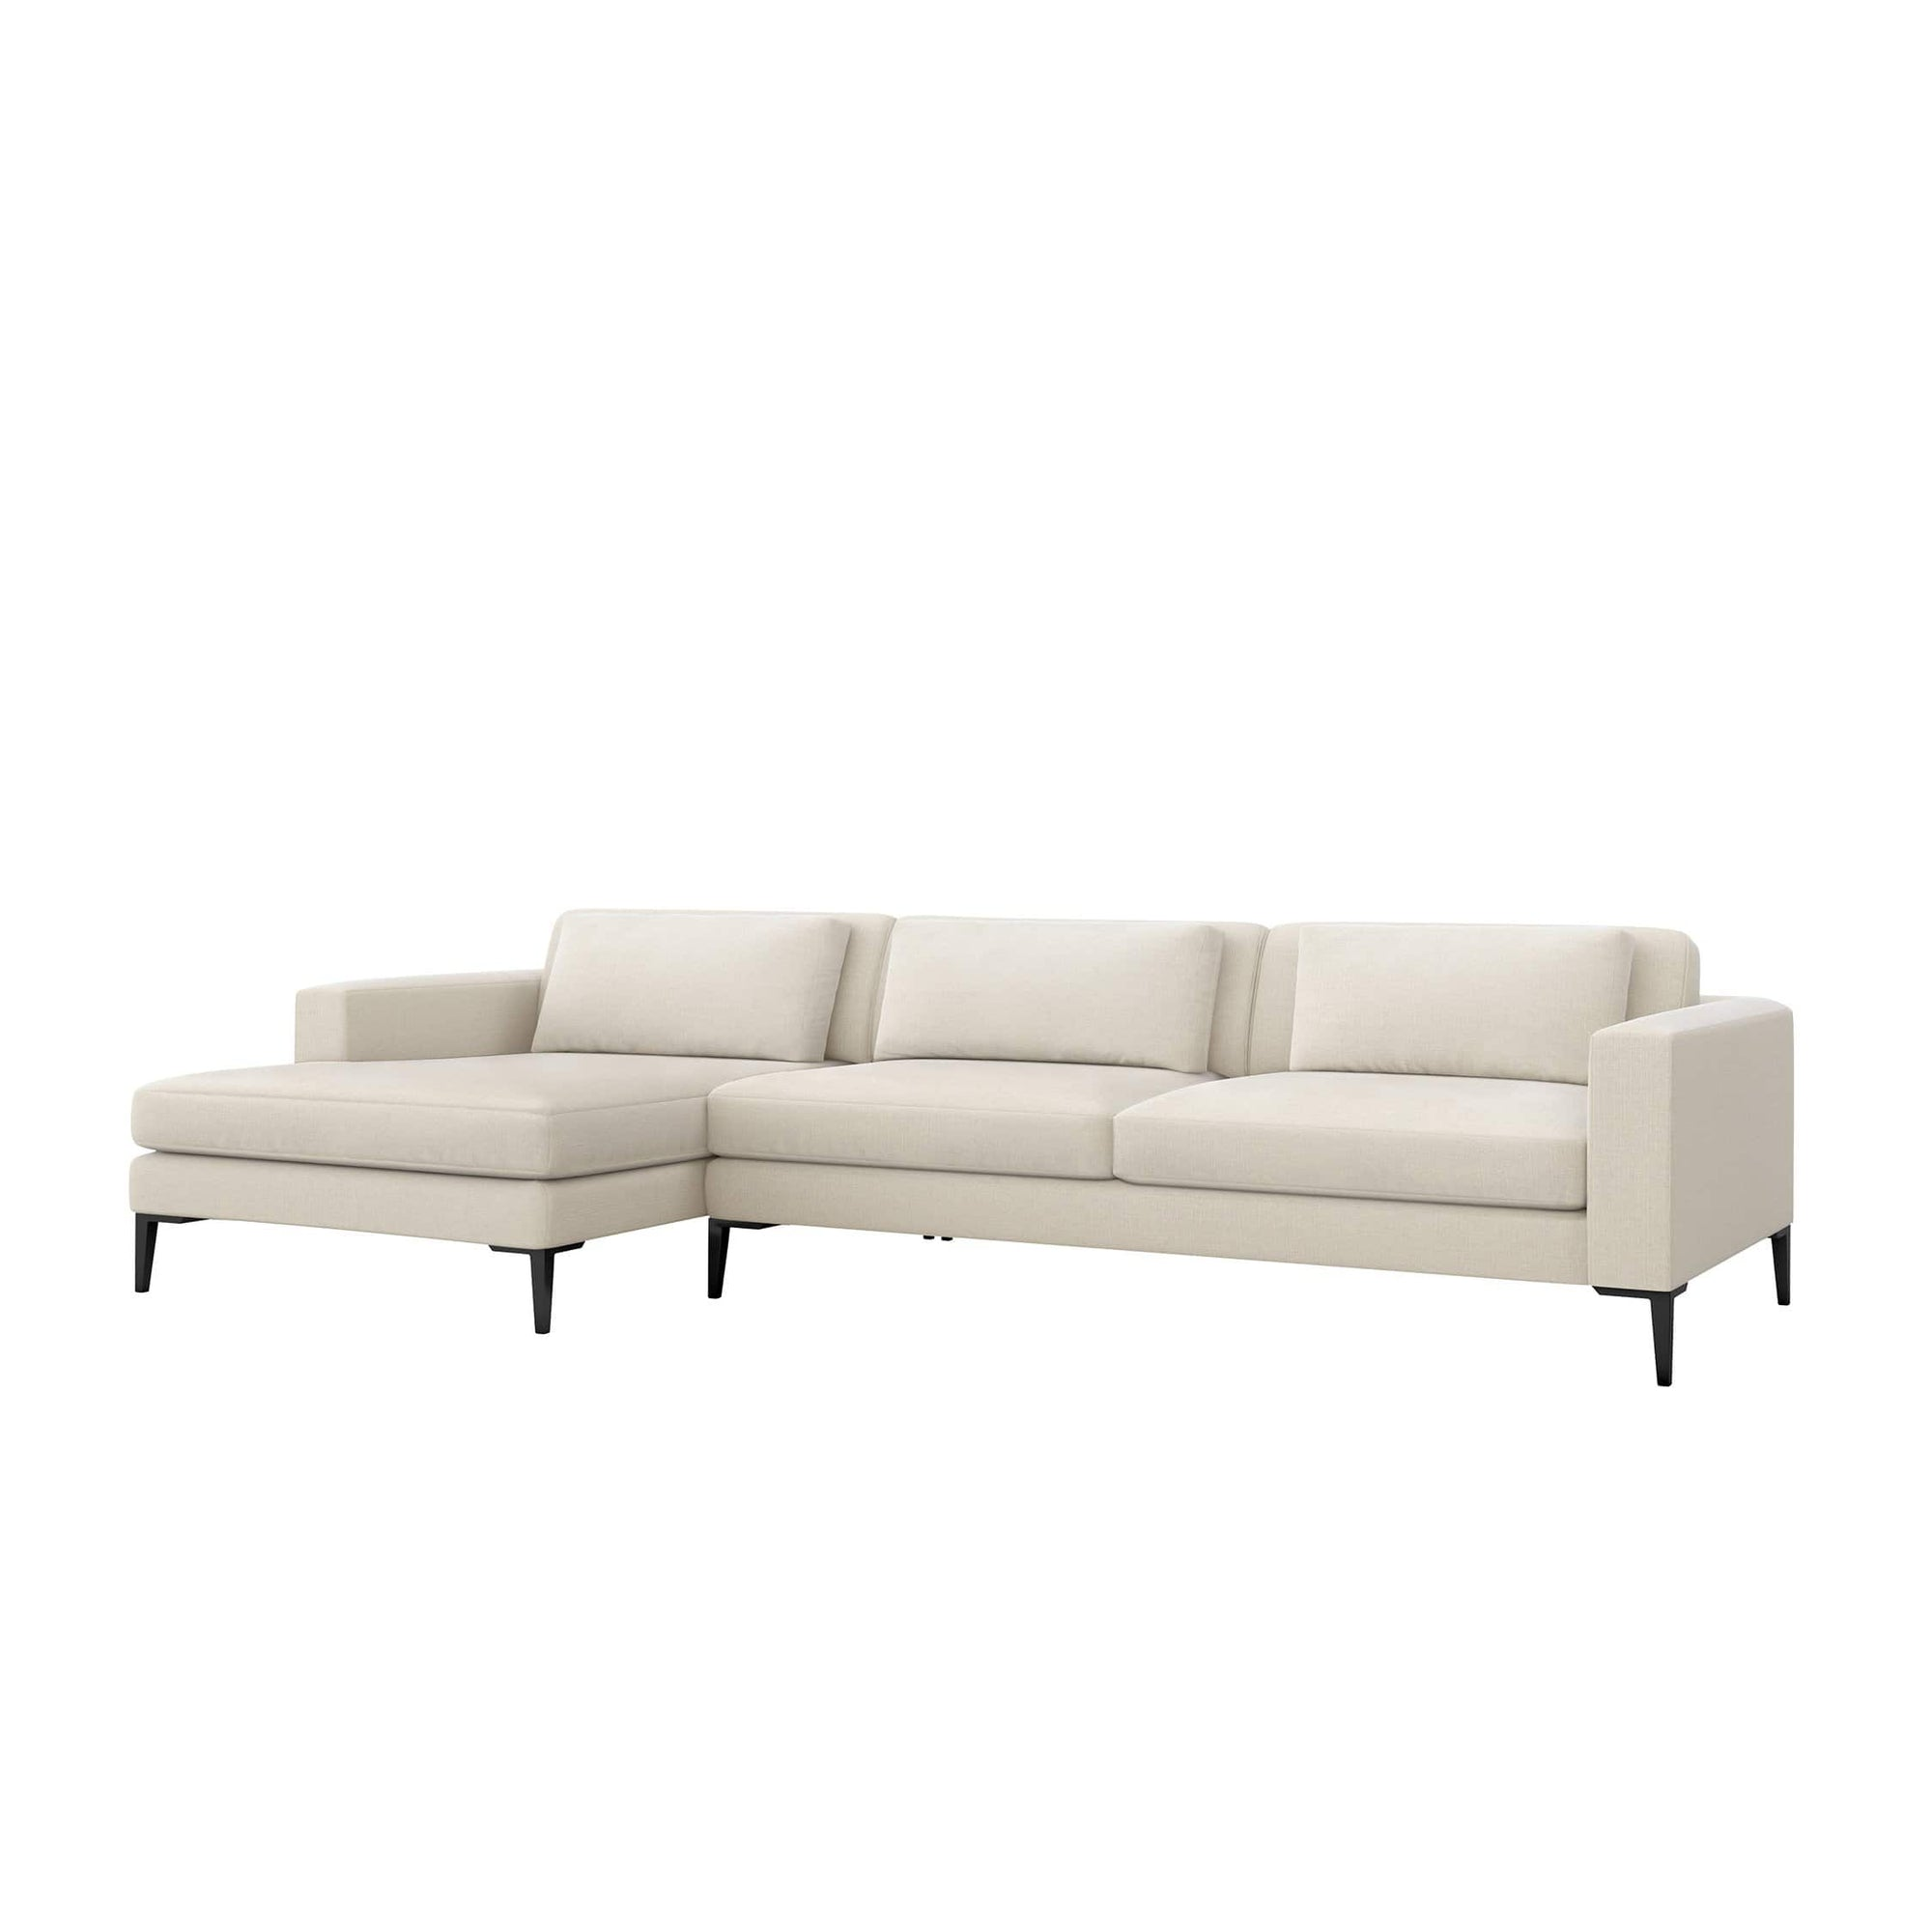 Interlude Home Interlude Home Izzy Left Chaise 2 Piece Sectional - Ivory 199015-1